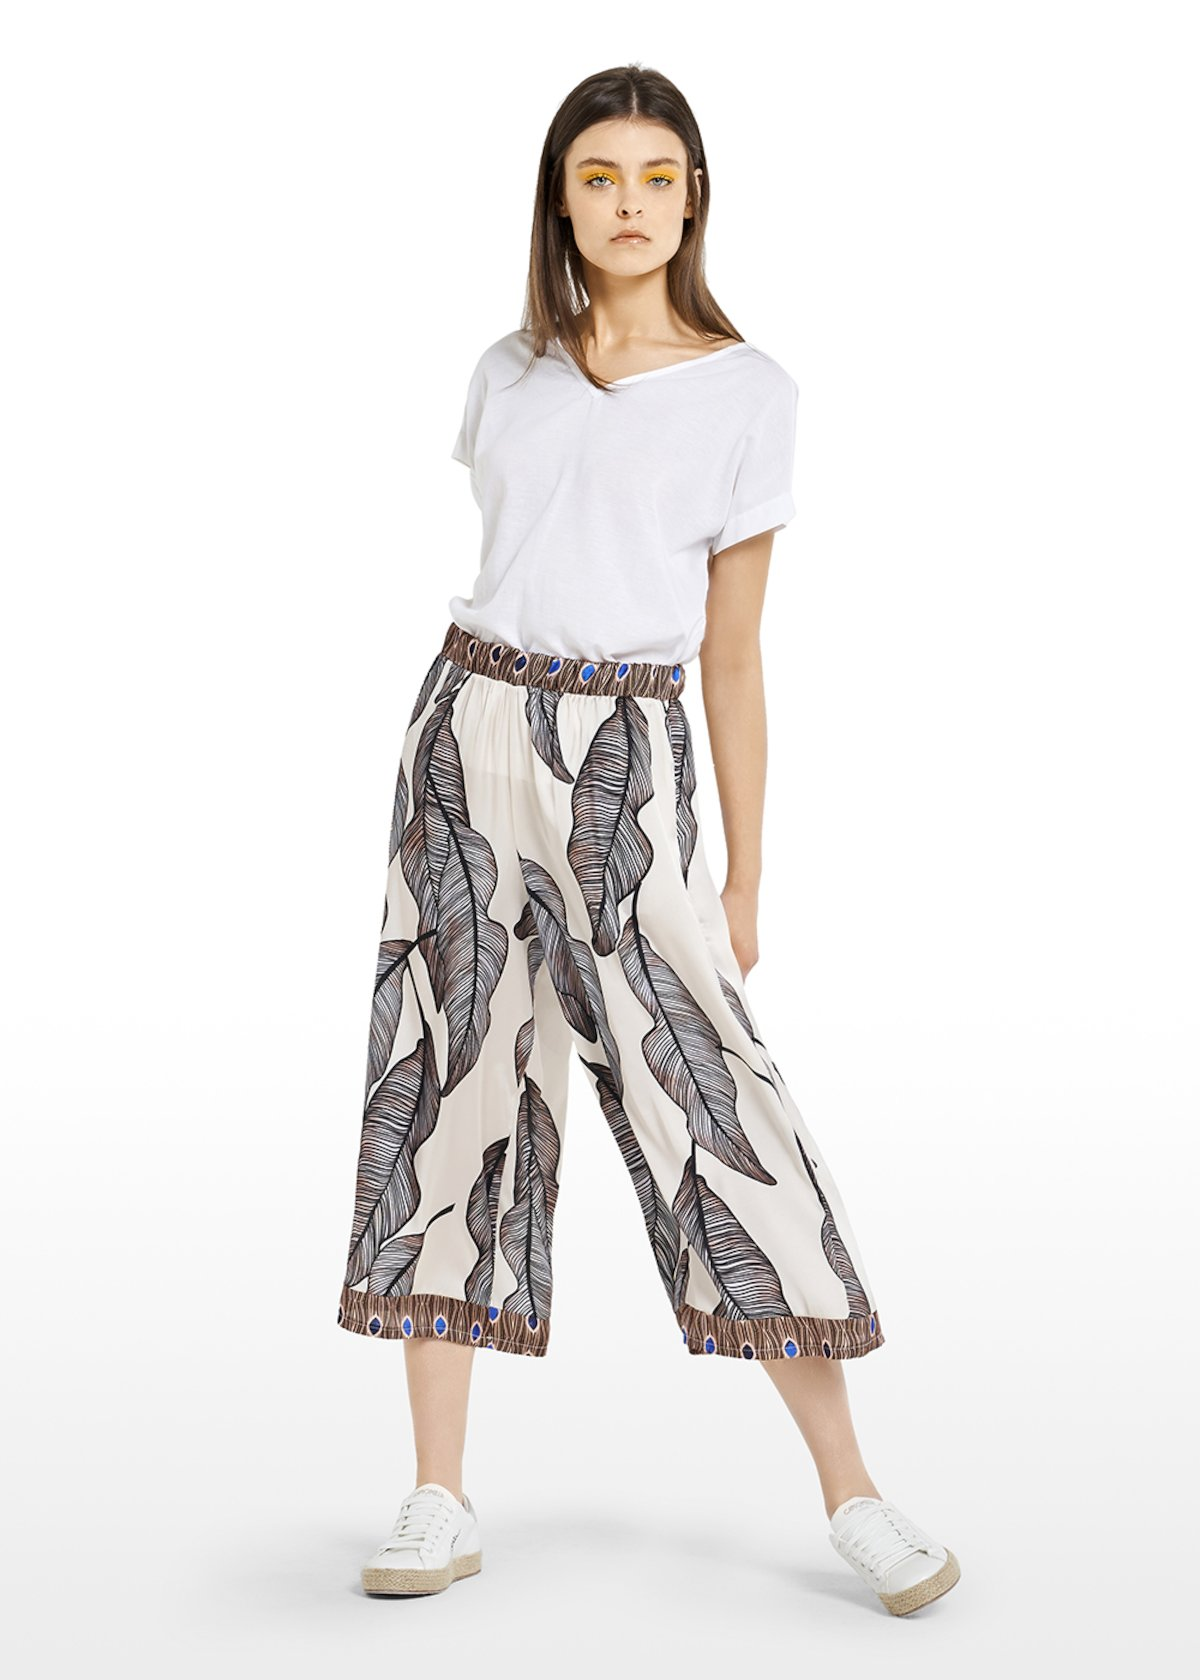 Capri pants Pelay with patterned leaves and contrasting edges - Black White Fantasia - Woman - Category image